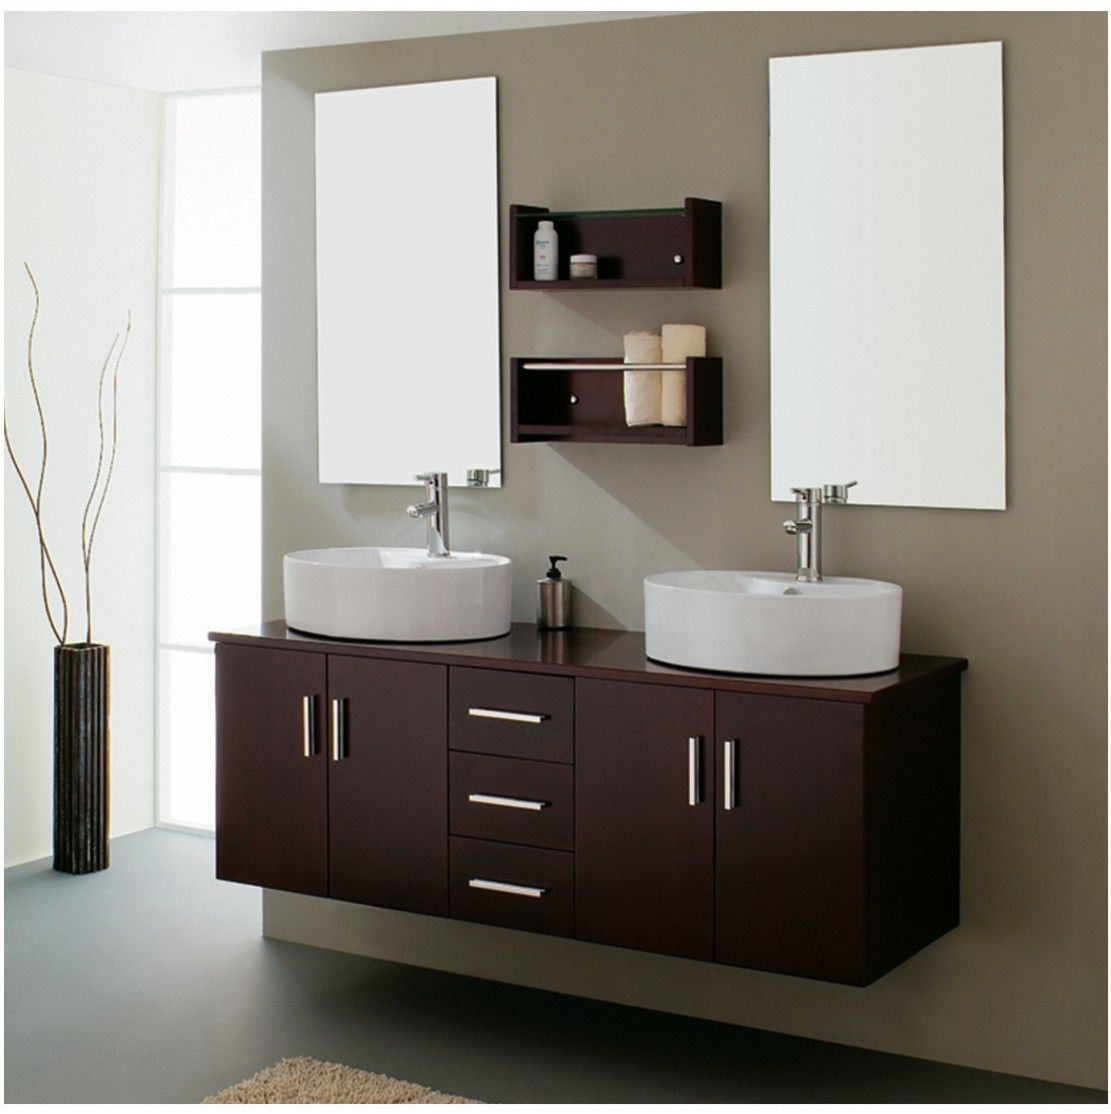 A modern minimal bathroom with clean lines architecture and appealing two oval white vessel sinks idea completed with metallic faucets mounted on espresso bathroom vanity use jk to navigate to previous and next geotapseo Choice Image